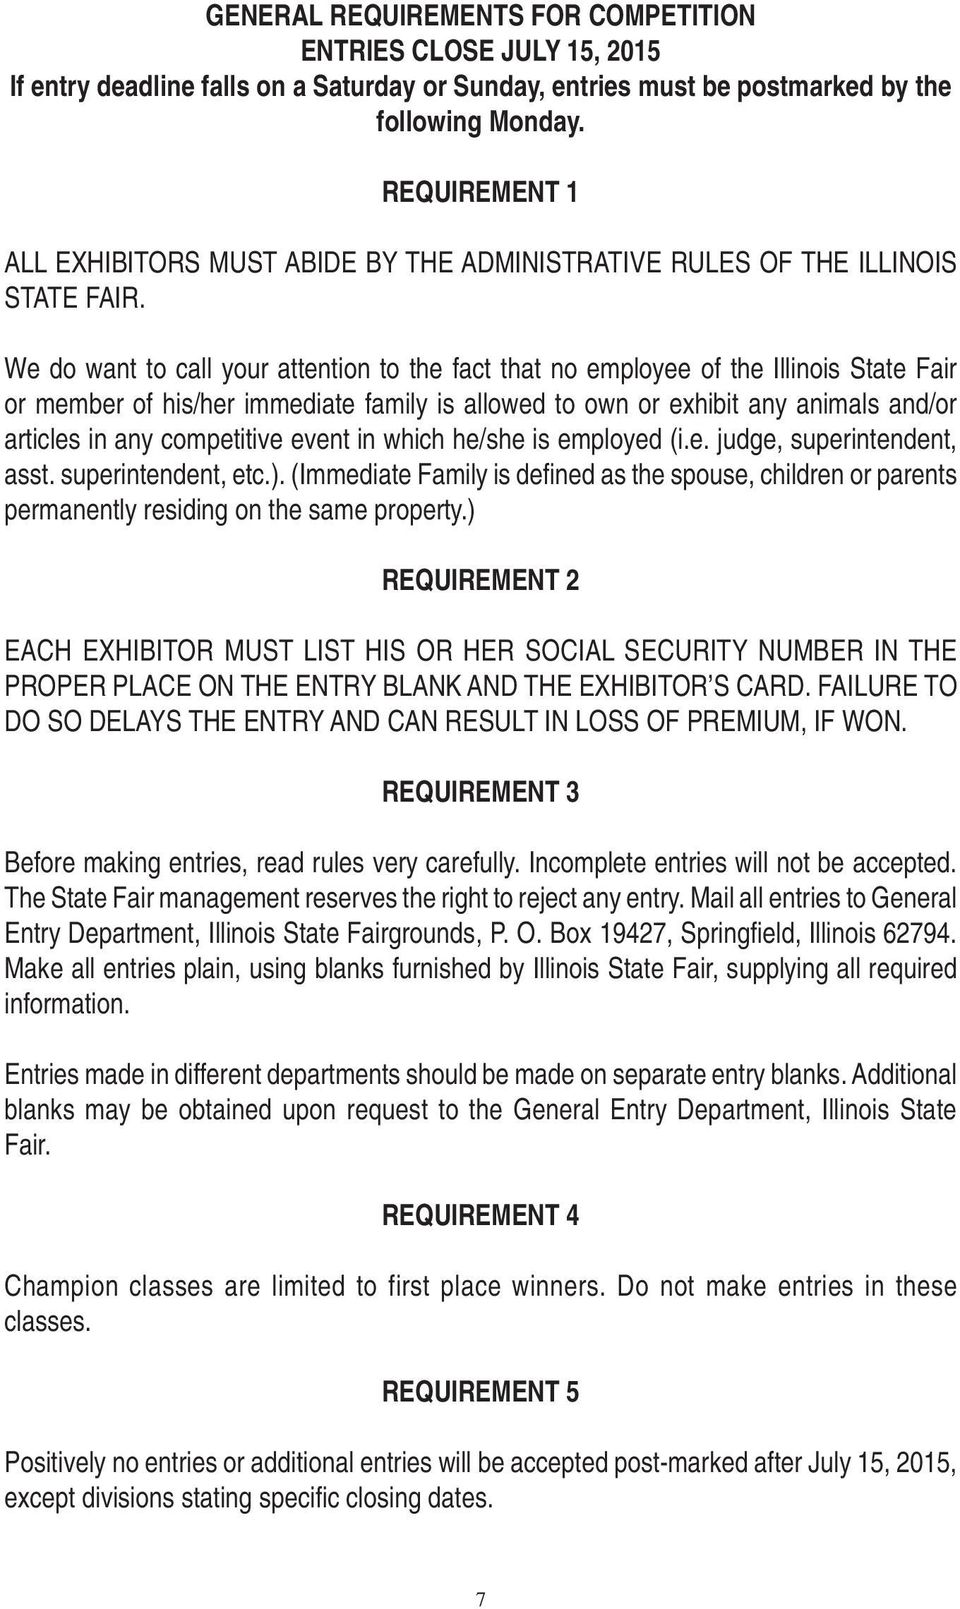 We do want to call your attention to the fact that no employee of the Illinois State Fair or member of his/her immediate family is allowed to own or exhibit any animals and/or articles in any